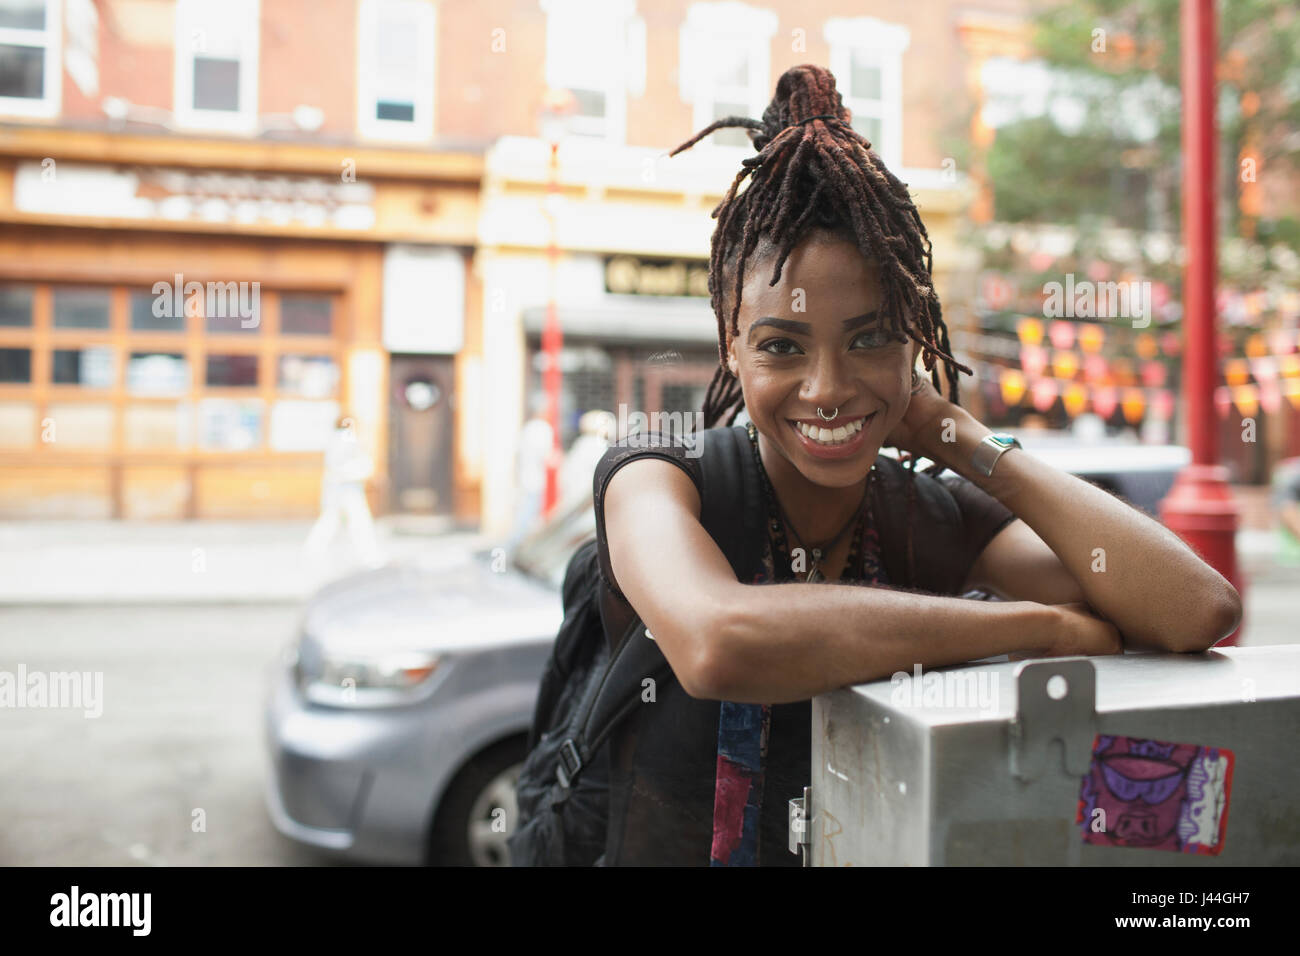 A young woman leaning against a metal box. - Stock Image